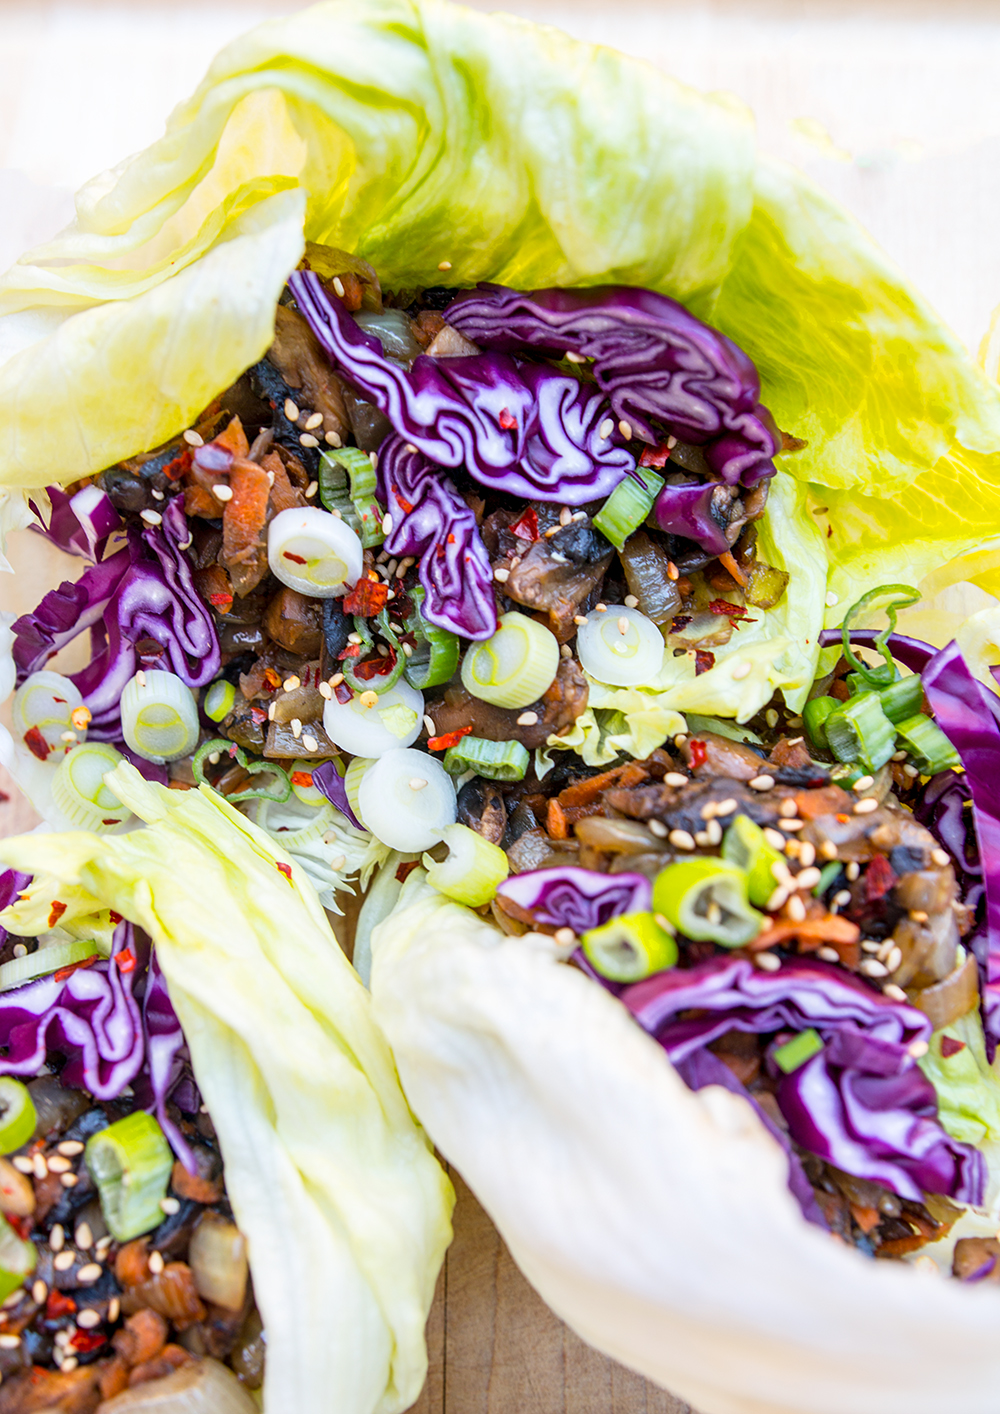 Spicy Veggie Lettuce Wraps: healthy meal made with vegetables from a corner store! (paleo, vegan)